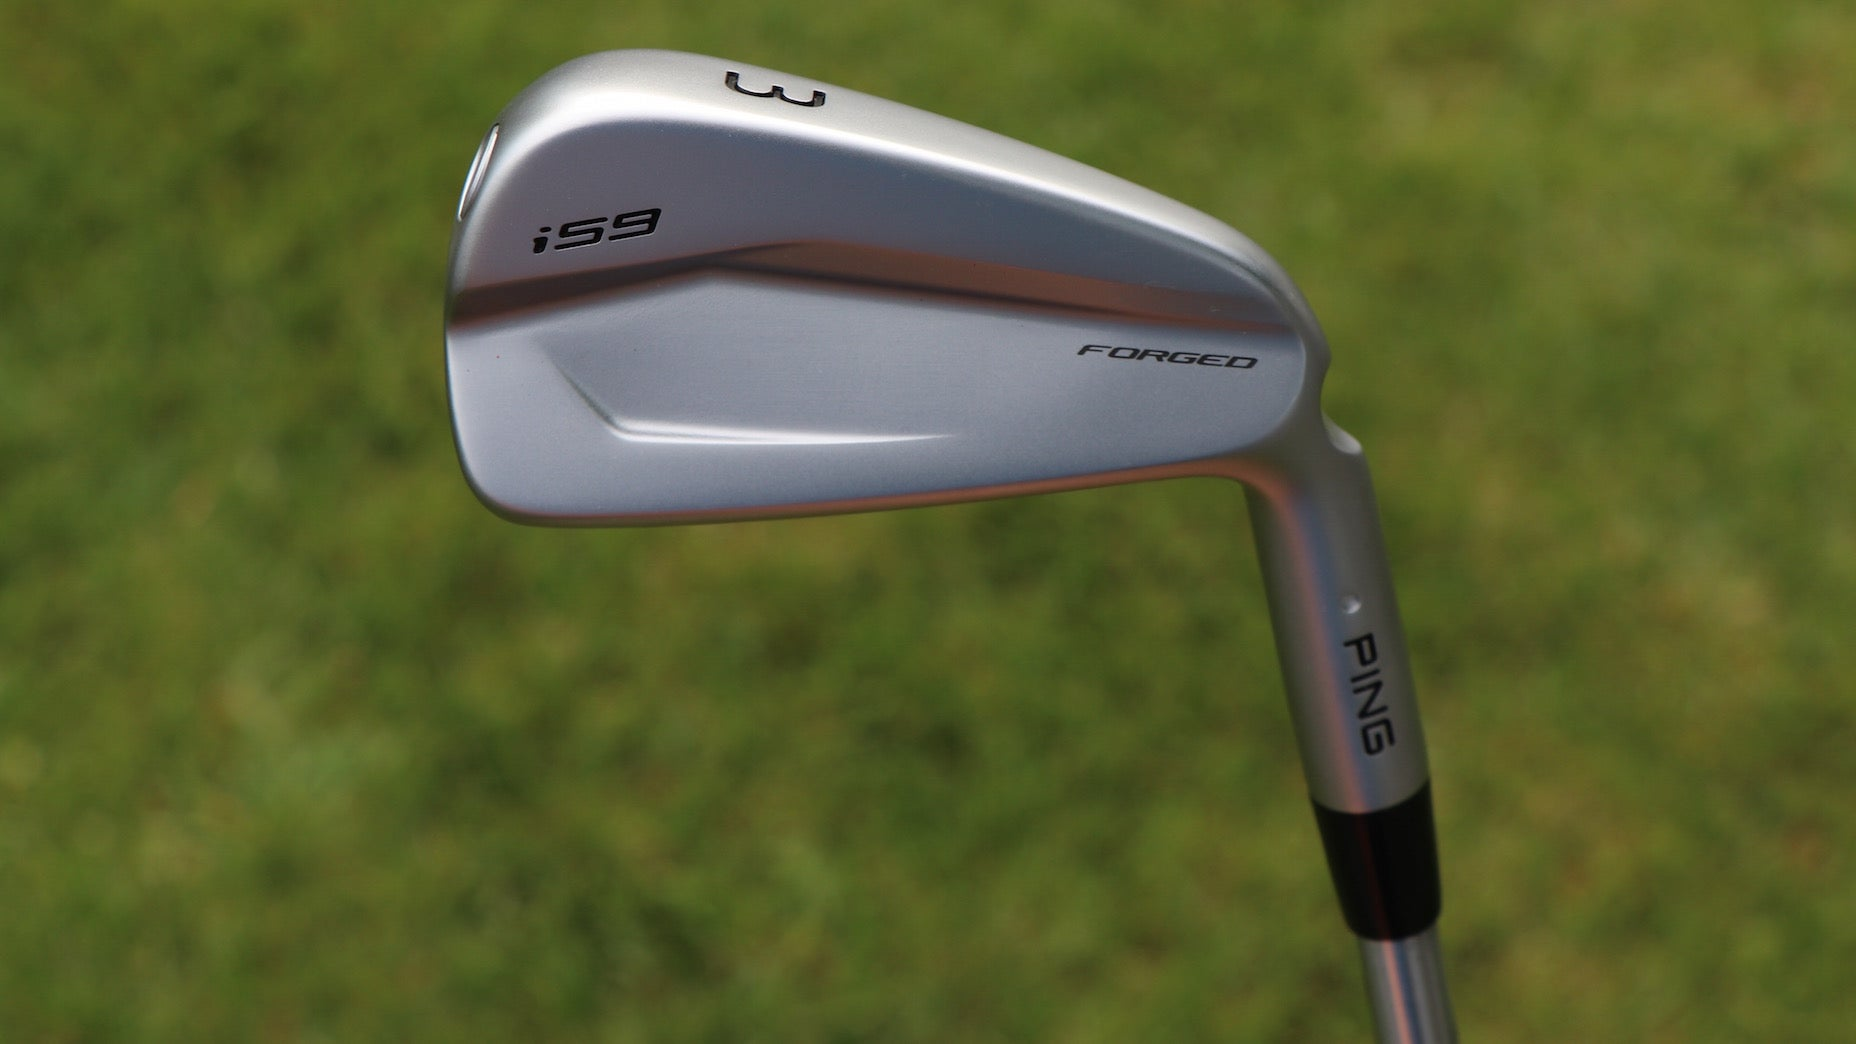 ping's i59 3-iron in-hand photos